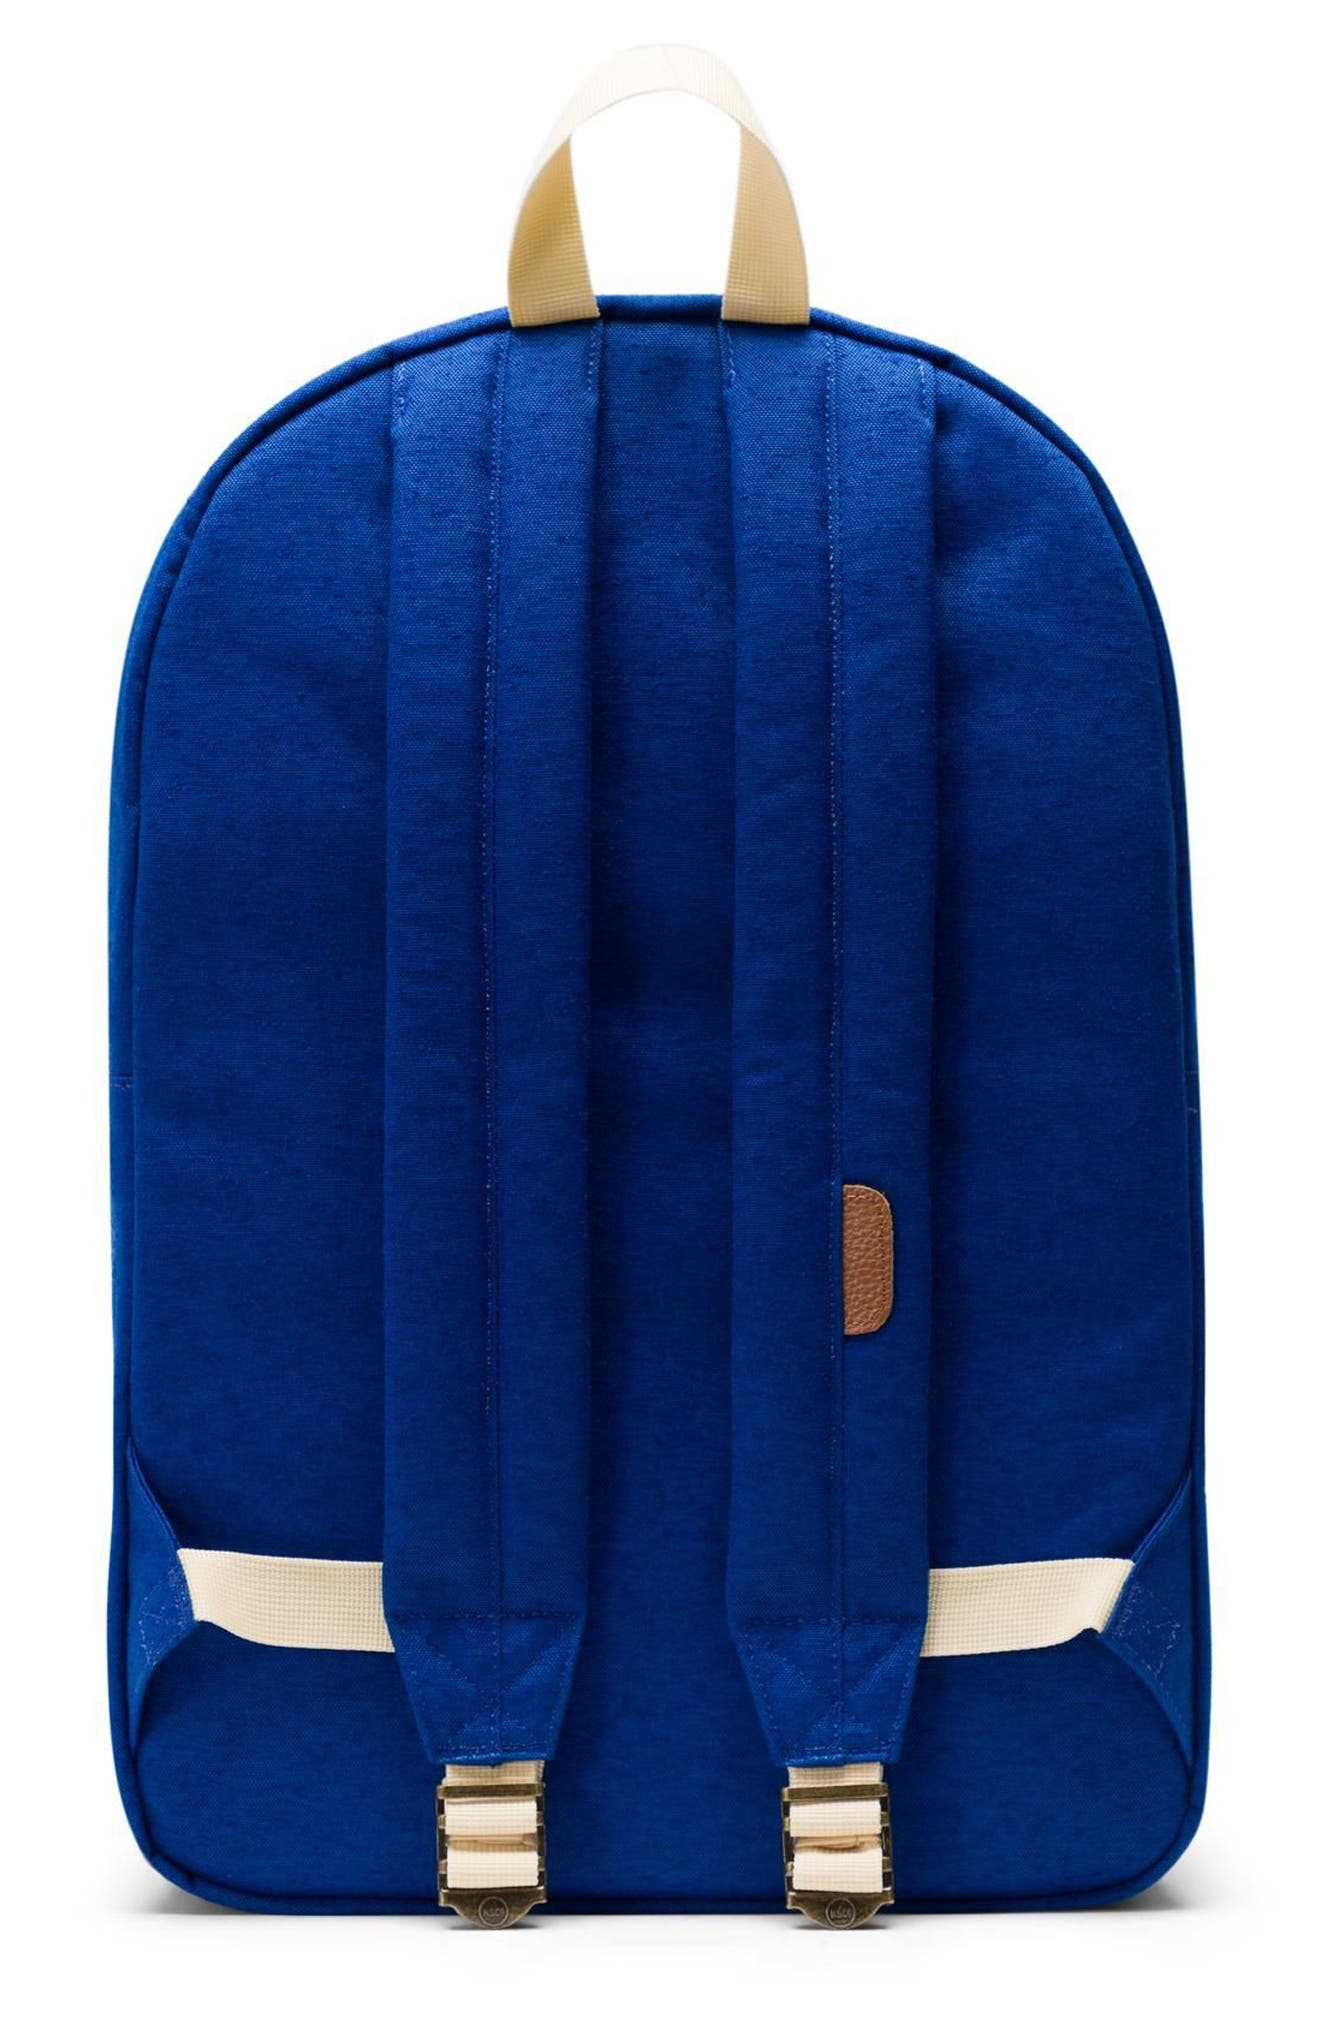 HERSCHEL SUPPLY CO. HERITAGE - MLB COOPERSTOWN COLLECTION BACKPACK - BLUE, MILWAUKEE BREWERS